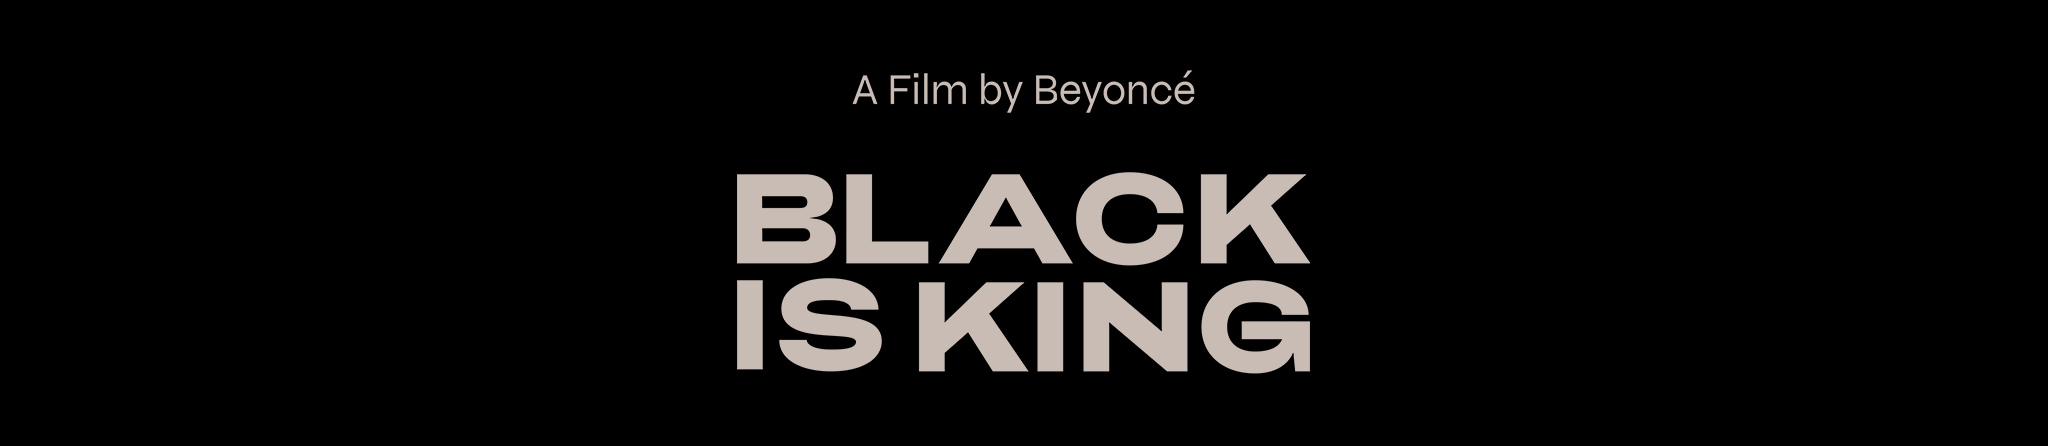 Black Is King | A Film by Beyoncé